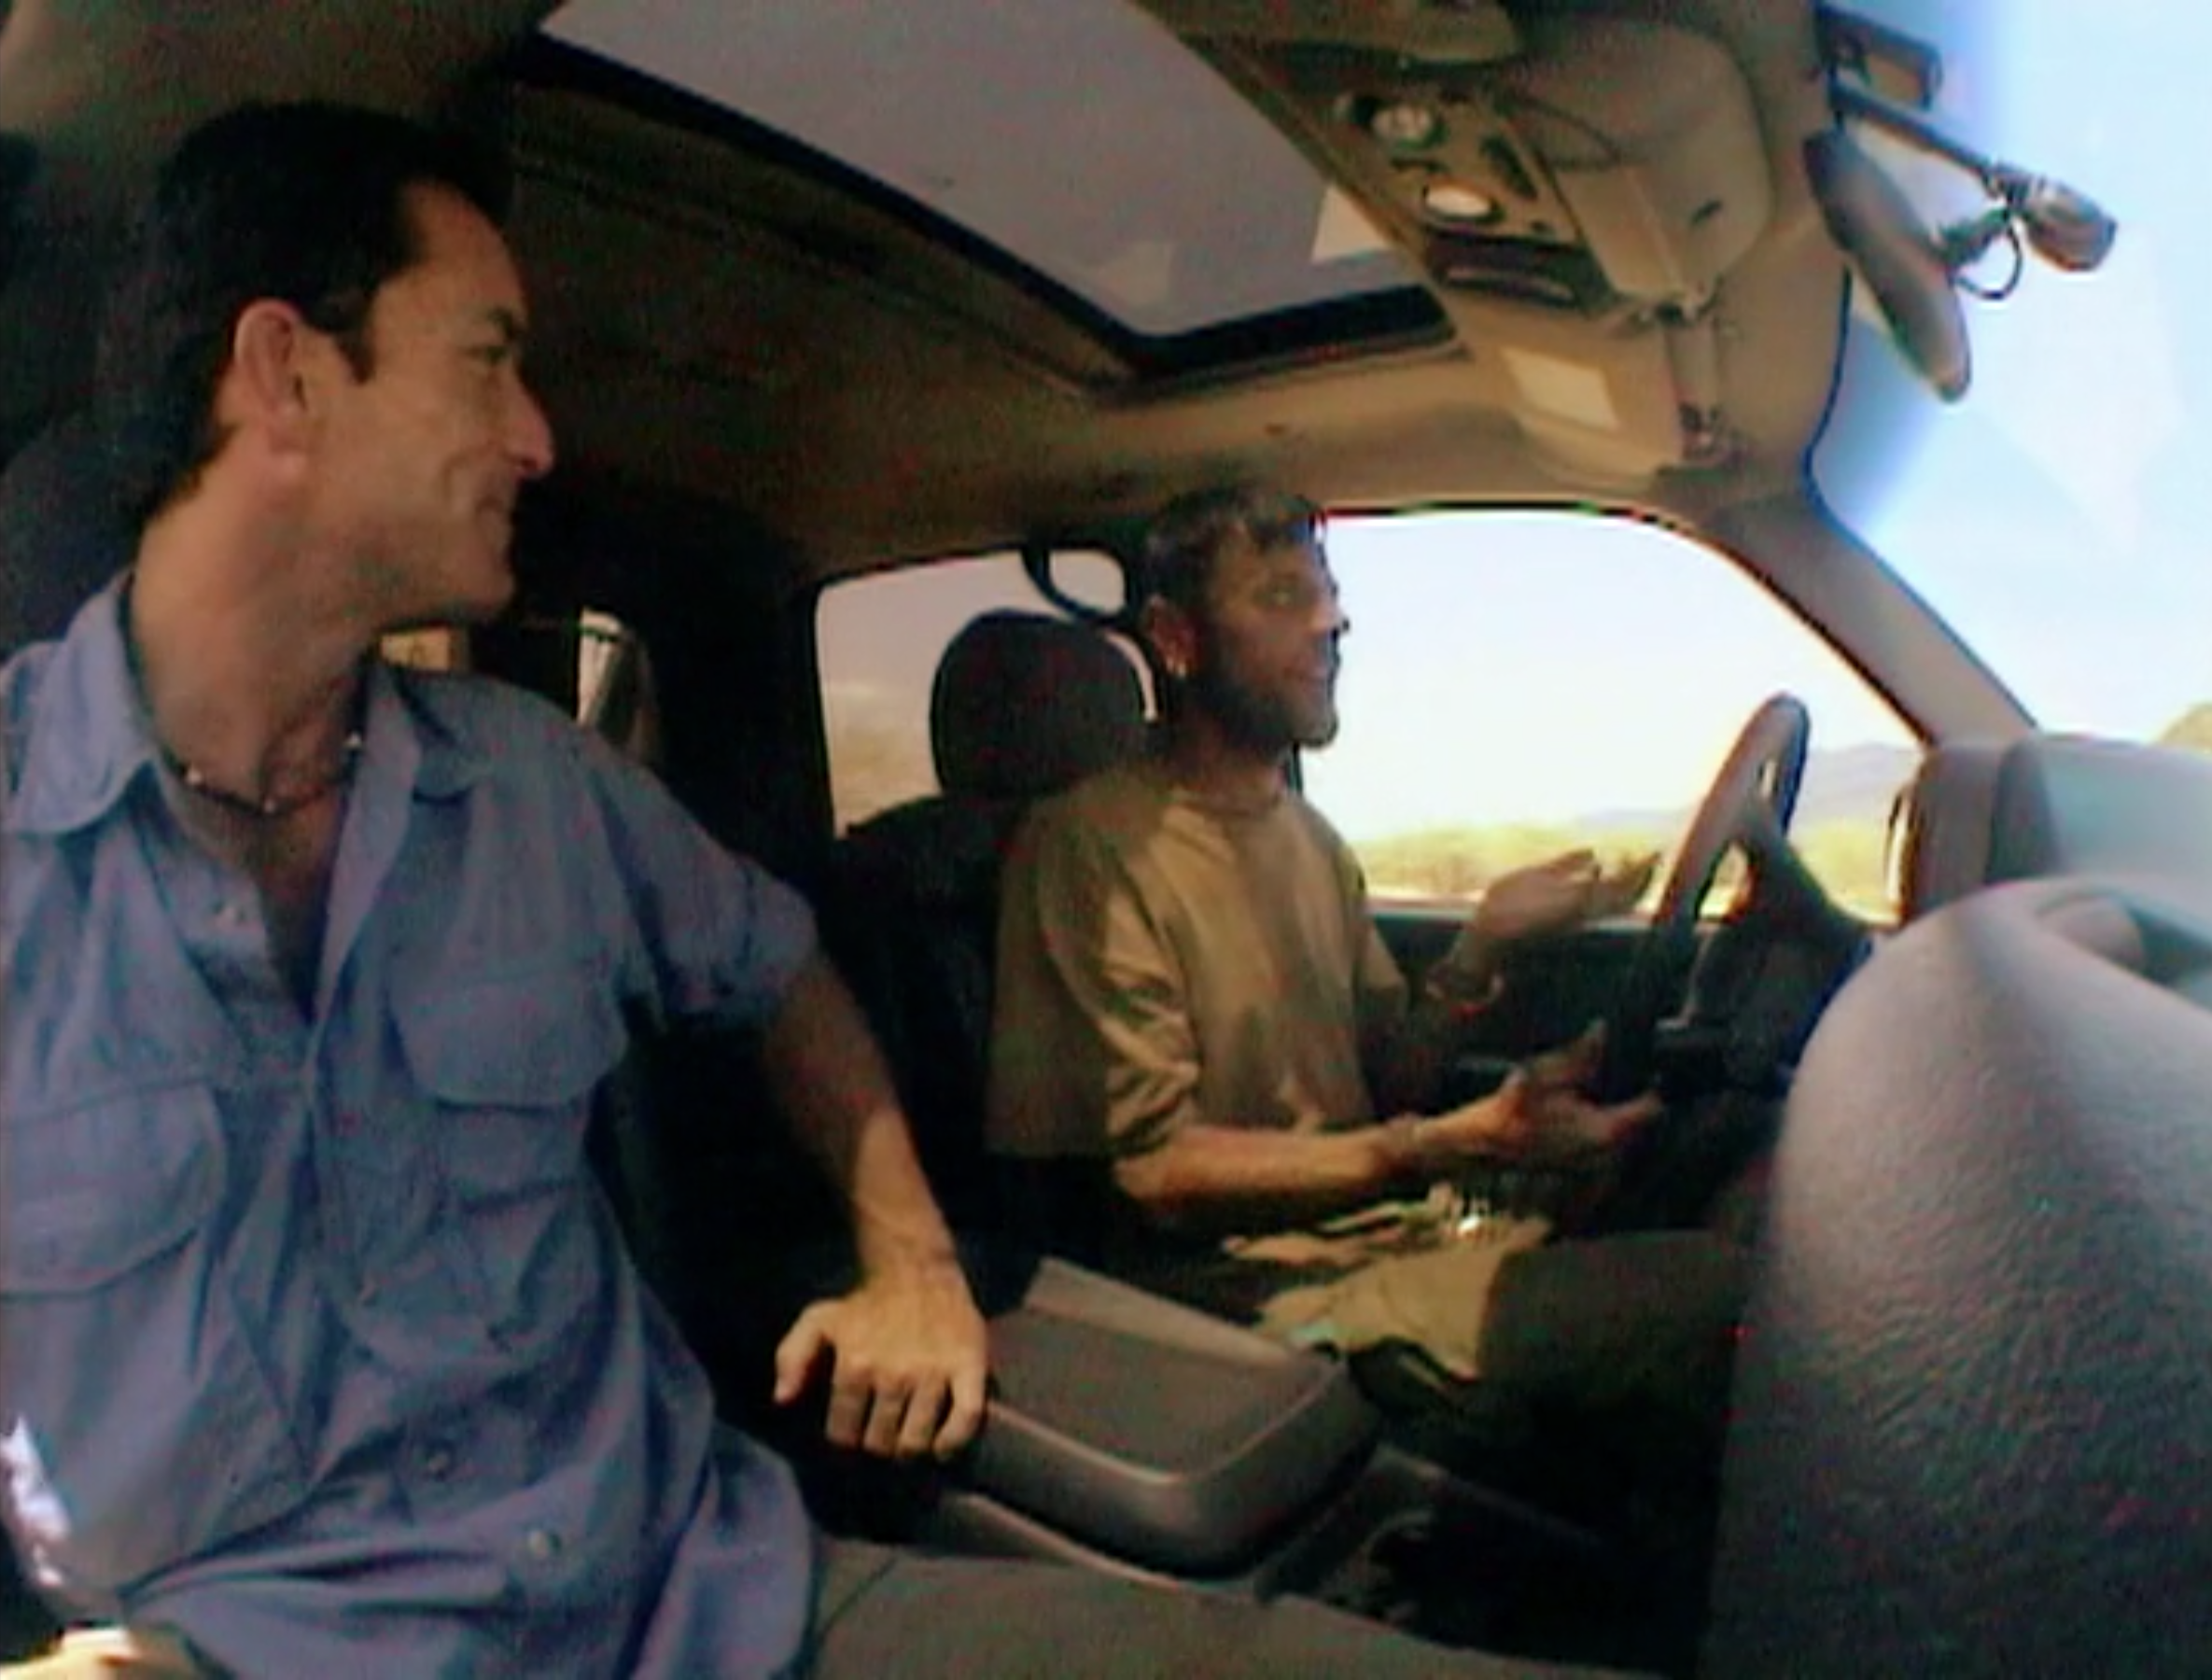 Jeff Probst rides in a new car with Lex van den Berghe